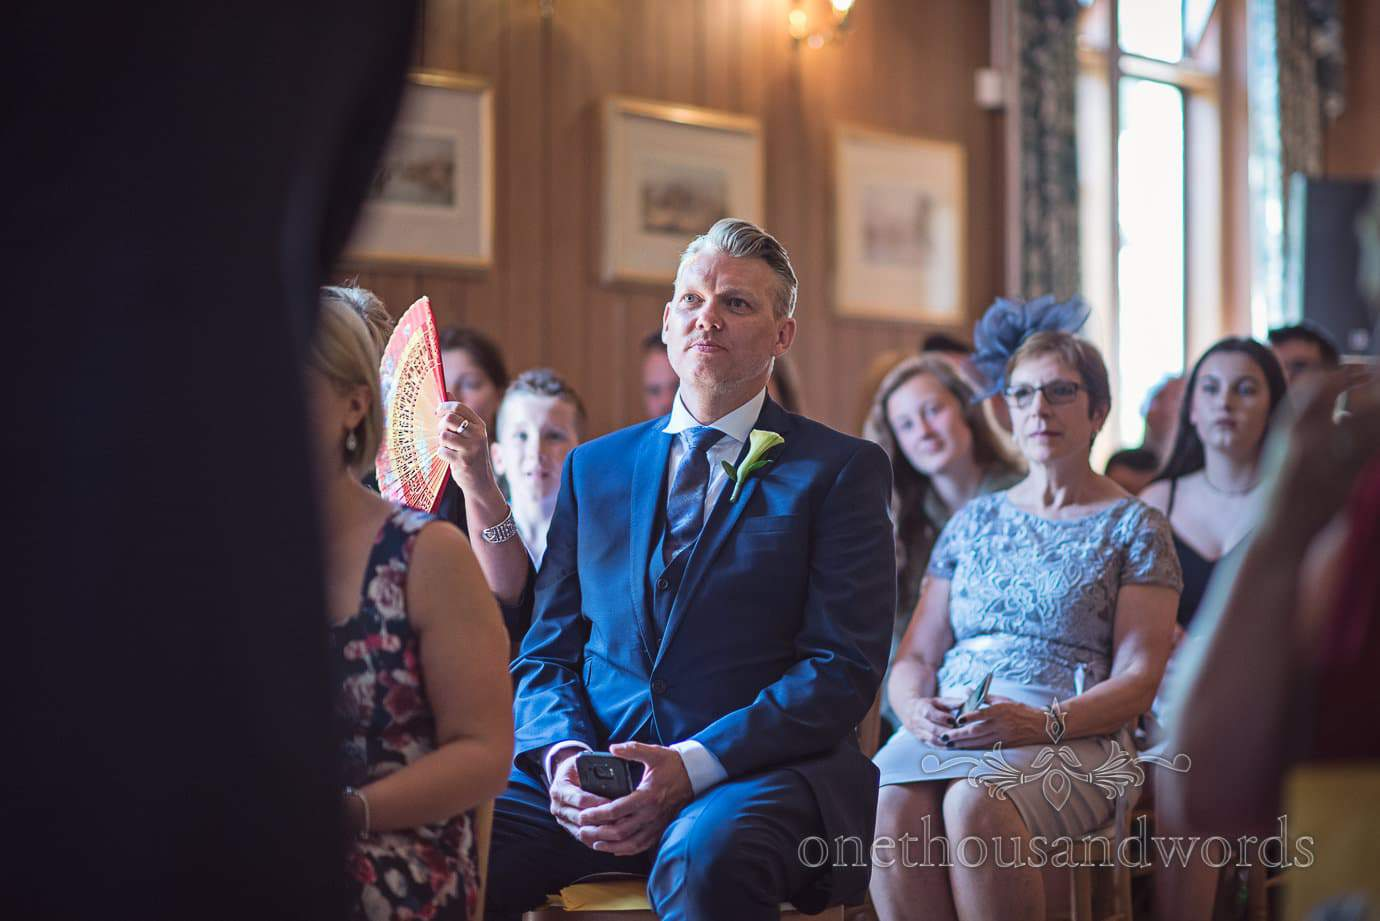 Wedding guest in Blue three piece suit watches wedding ceremony at Purbeck House Hotel